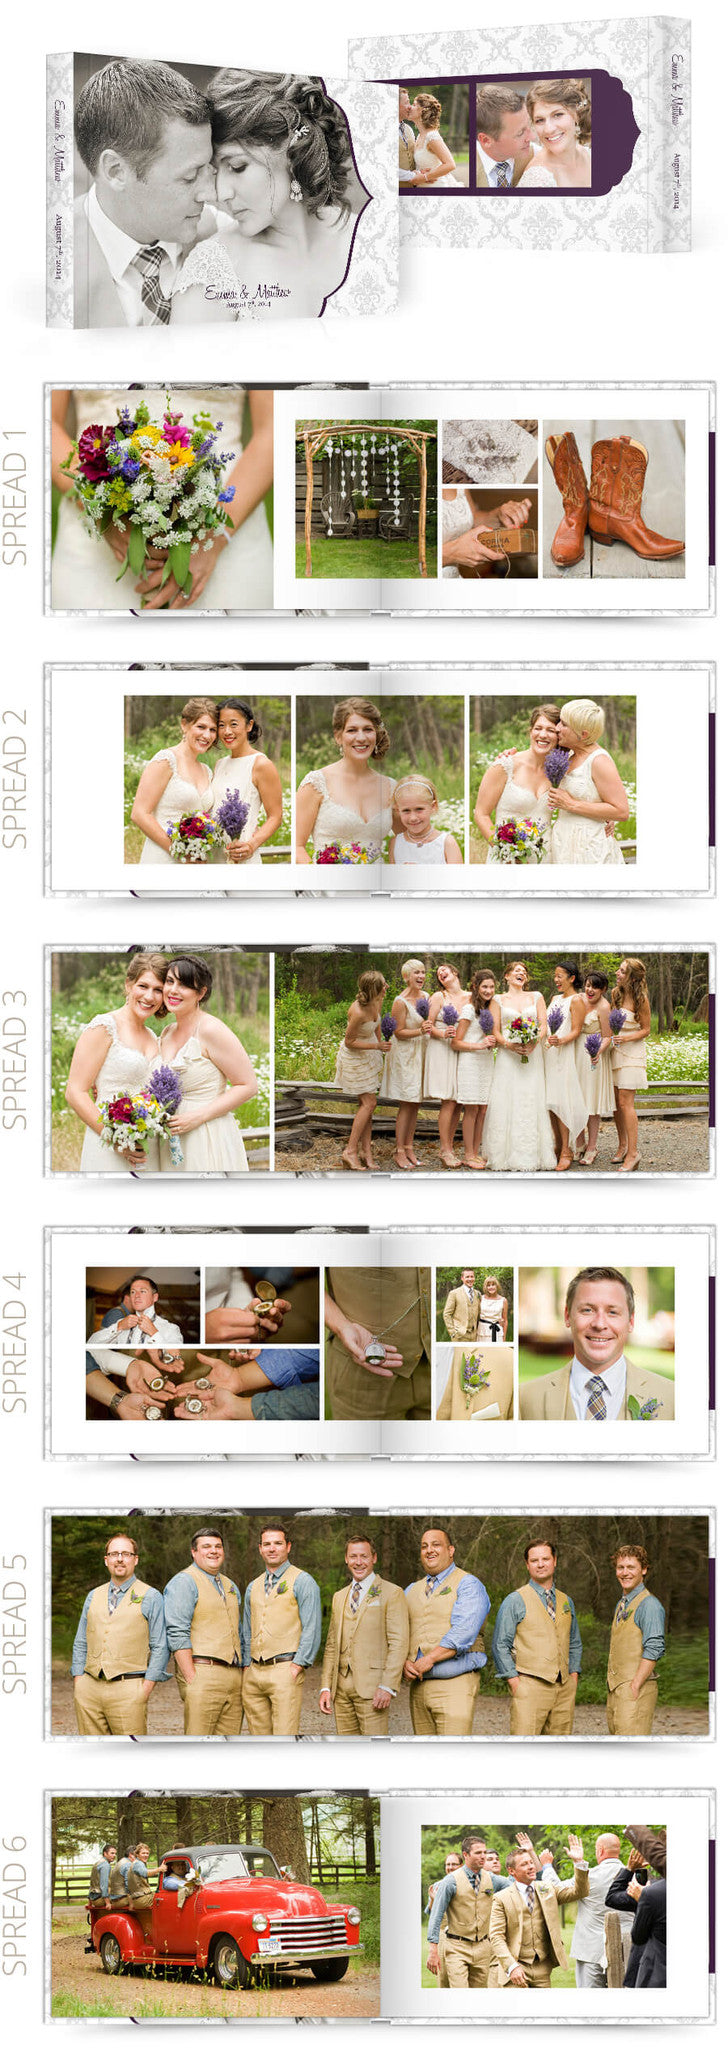 Petit Fleur Wedding 12x8 Album Photoshop Templates